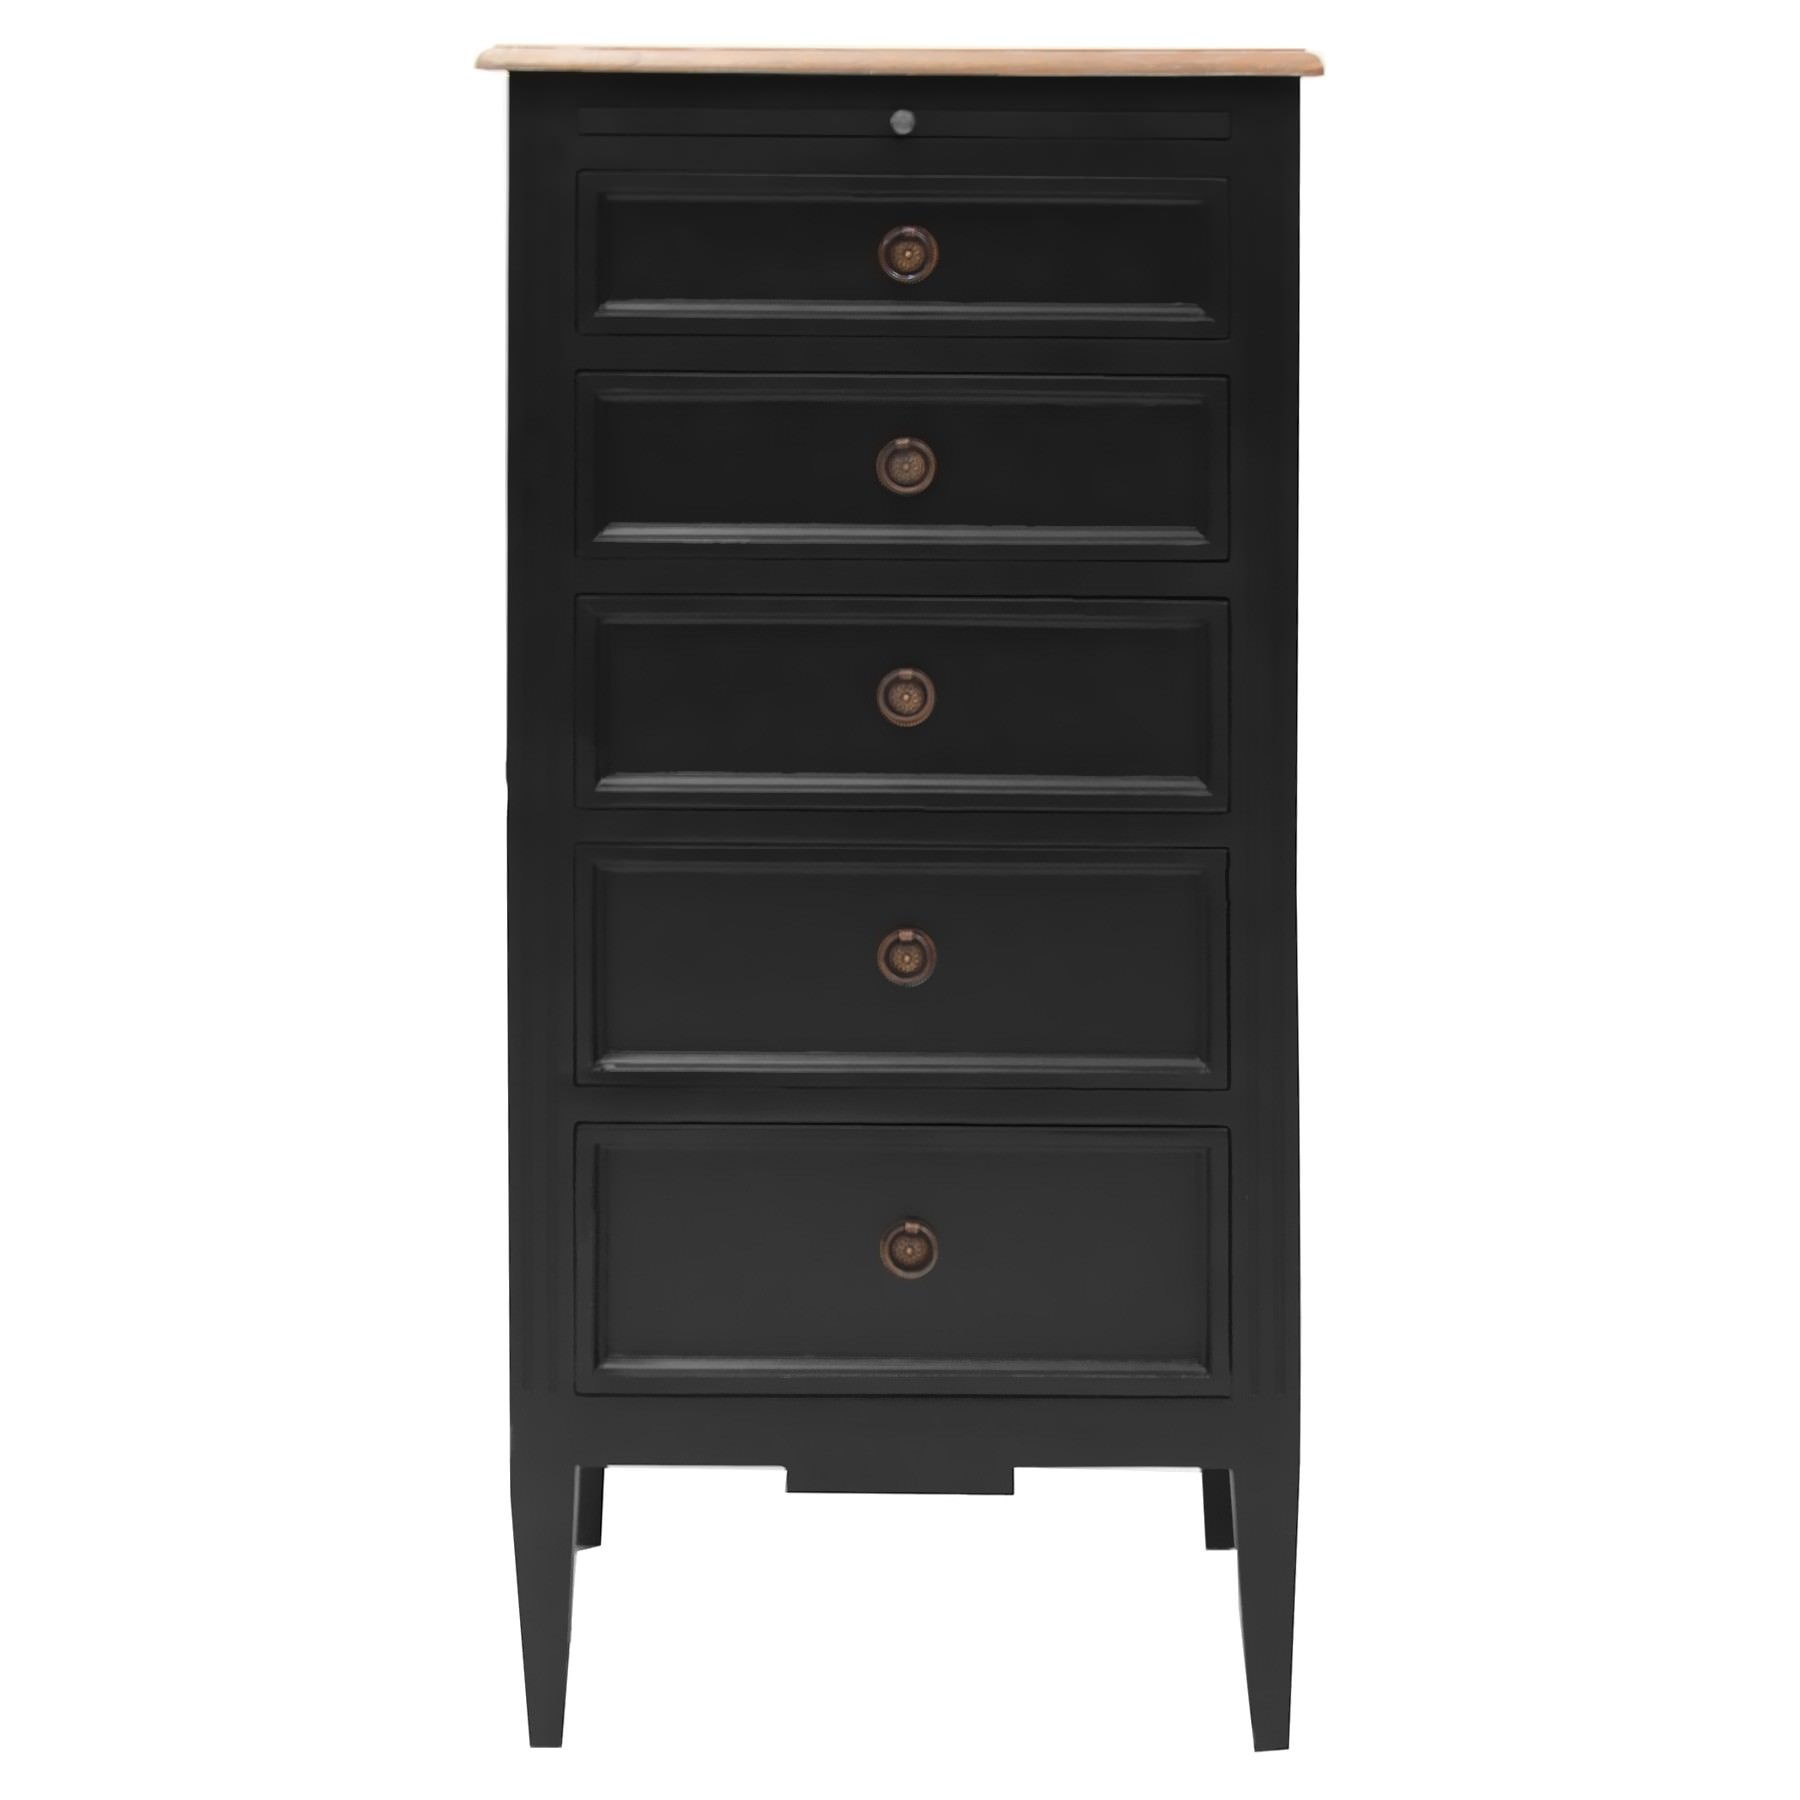 Belley Hand Crafted Mahogany Timber 5 Drawer Tallboy, Black / Weathered Oak